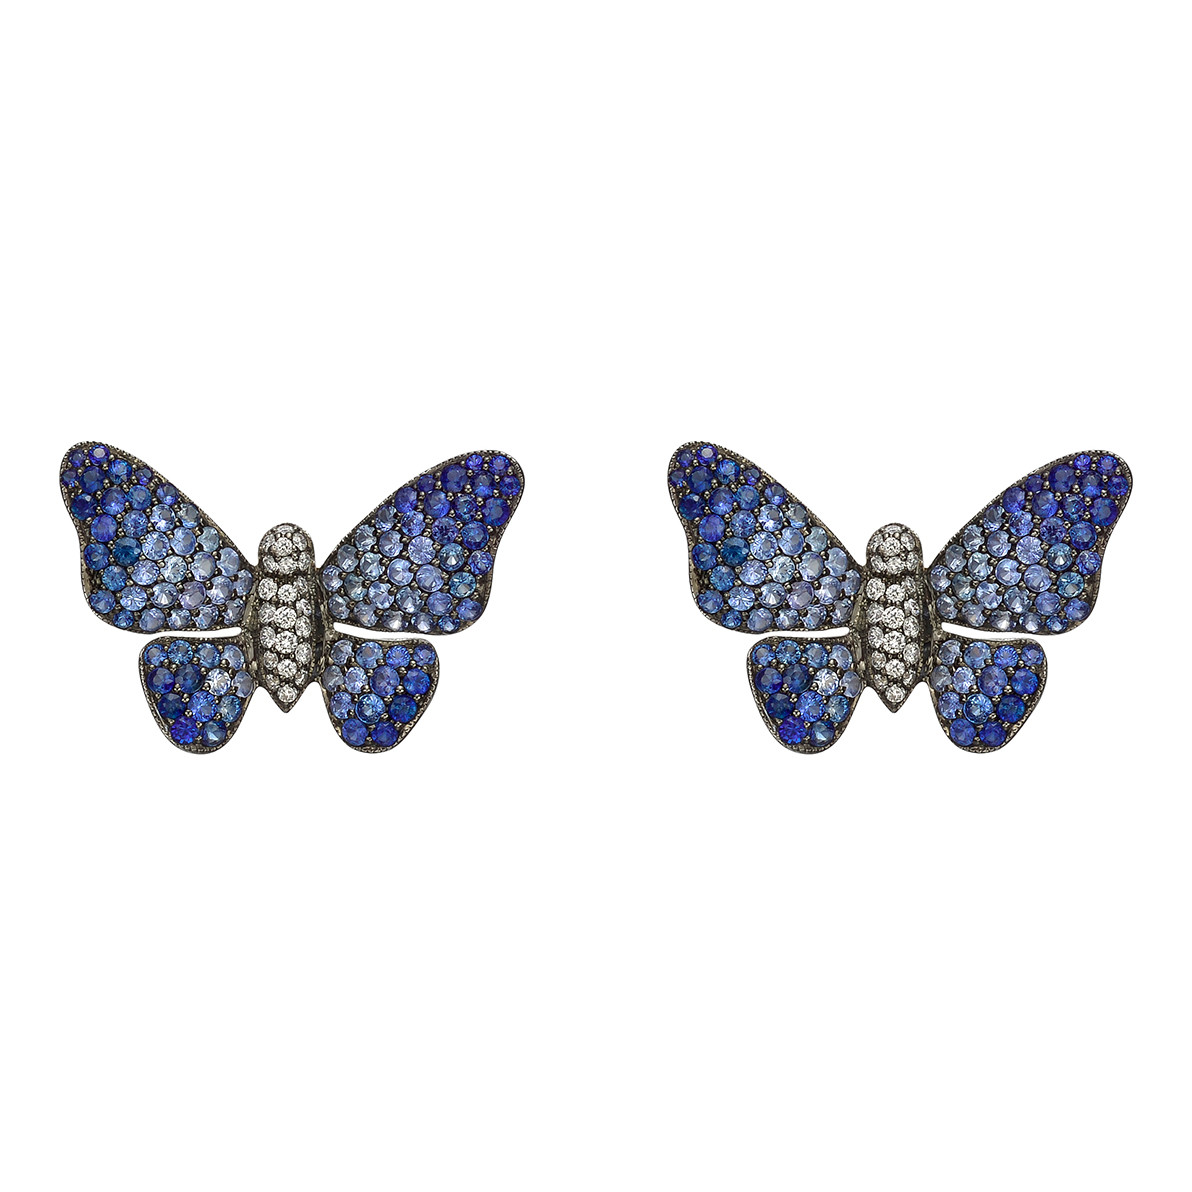 Medium Blue Sapphire & Diamond Butterfly Earrings